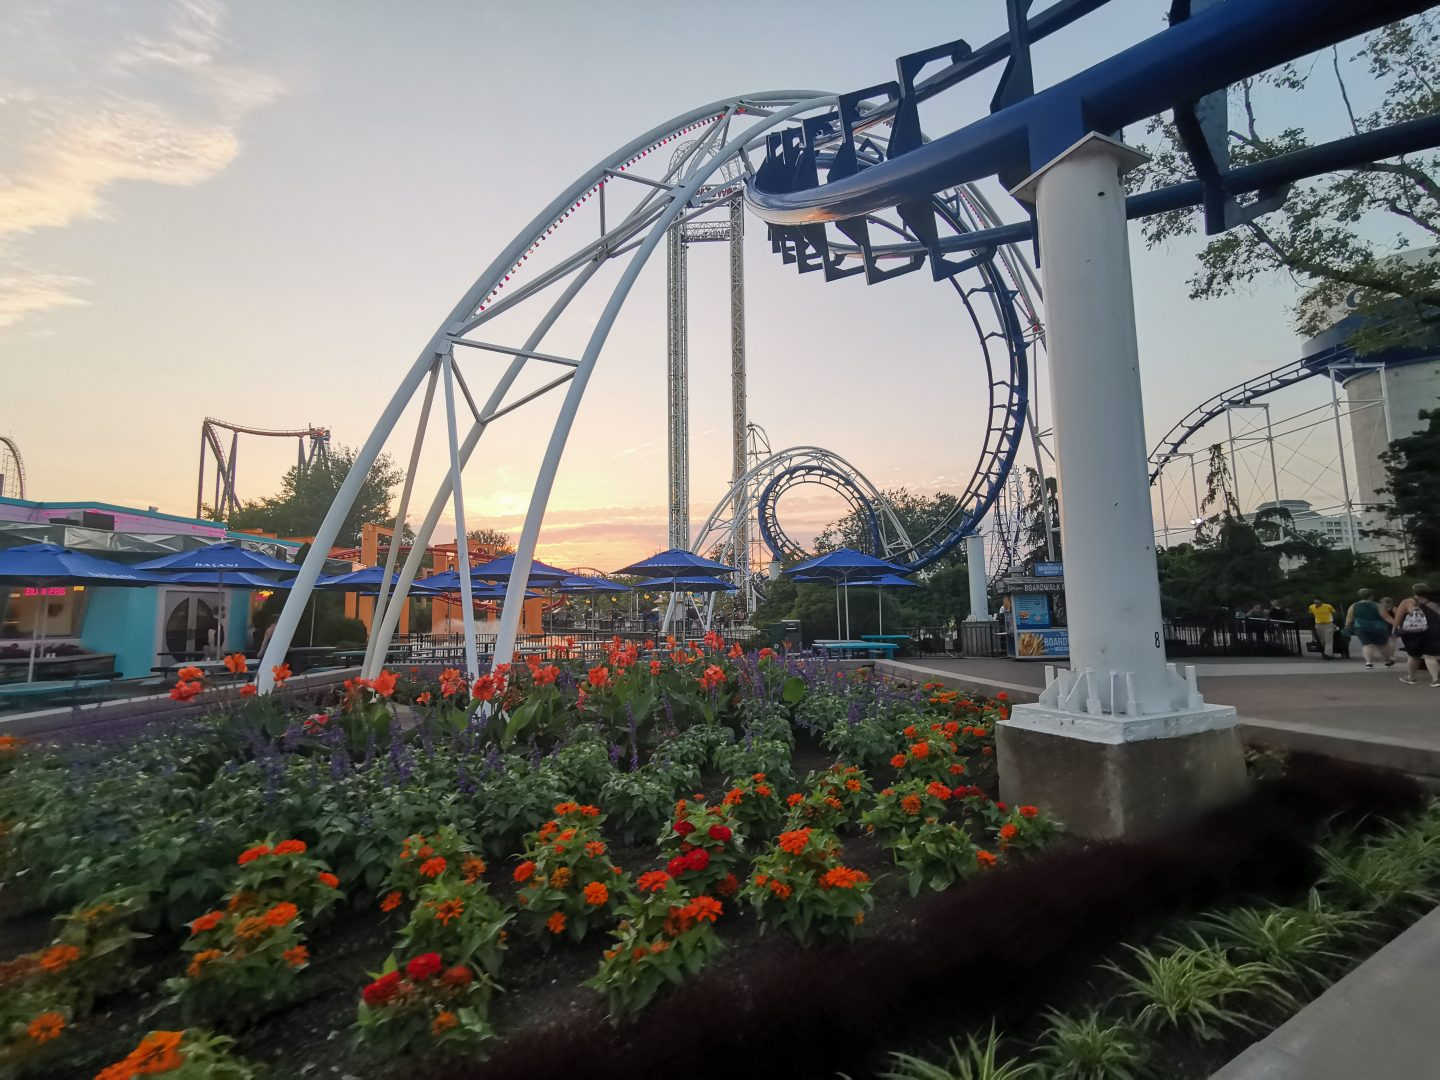 TREK AMERICA | GRAND TREK | DAY 40: CEDAR POINT